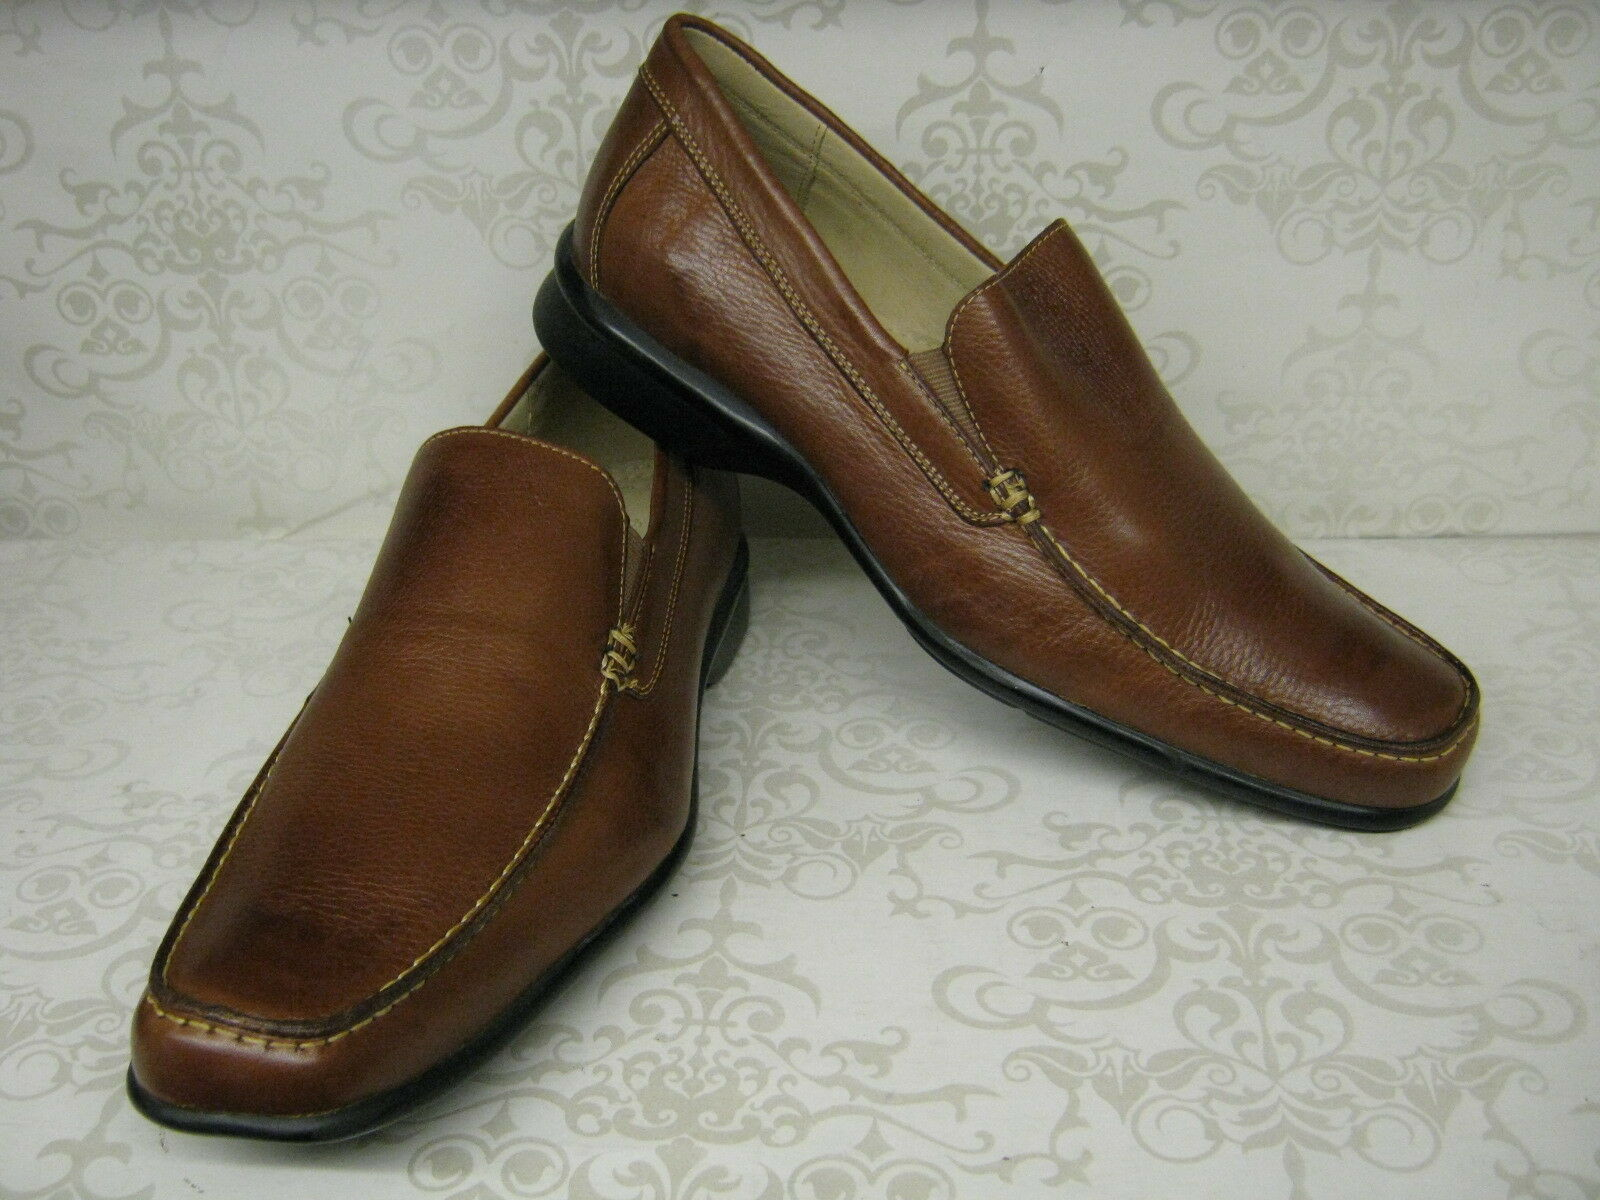 Mens Anatomic & Co Canudos 323240 Cognac Or Black Leather Slip On Moccasin Shoes